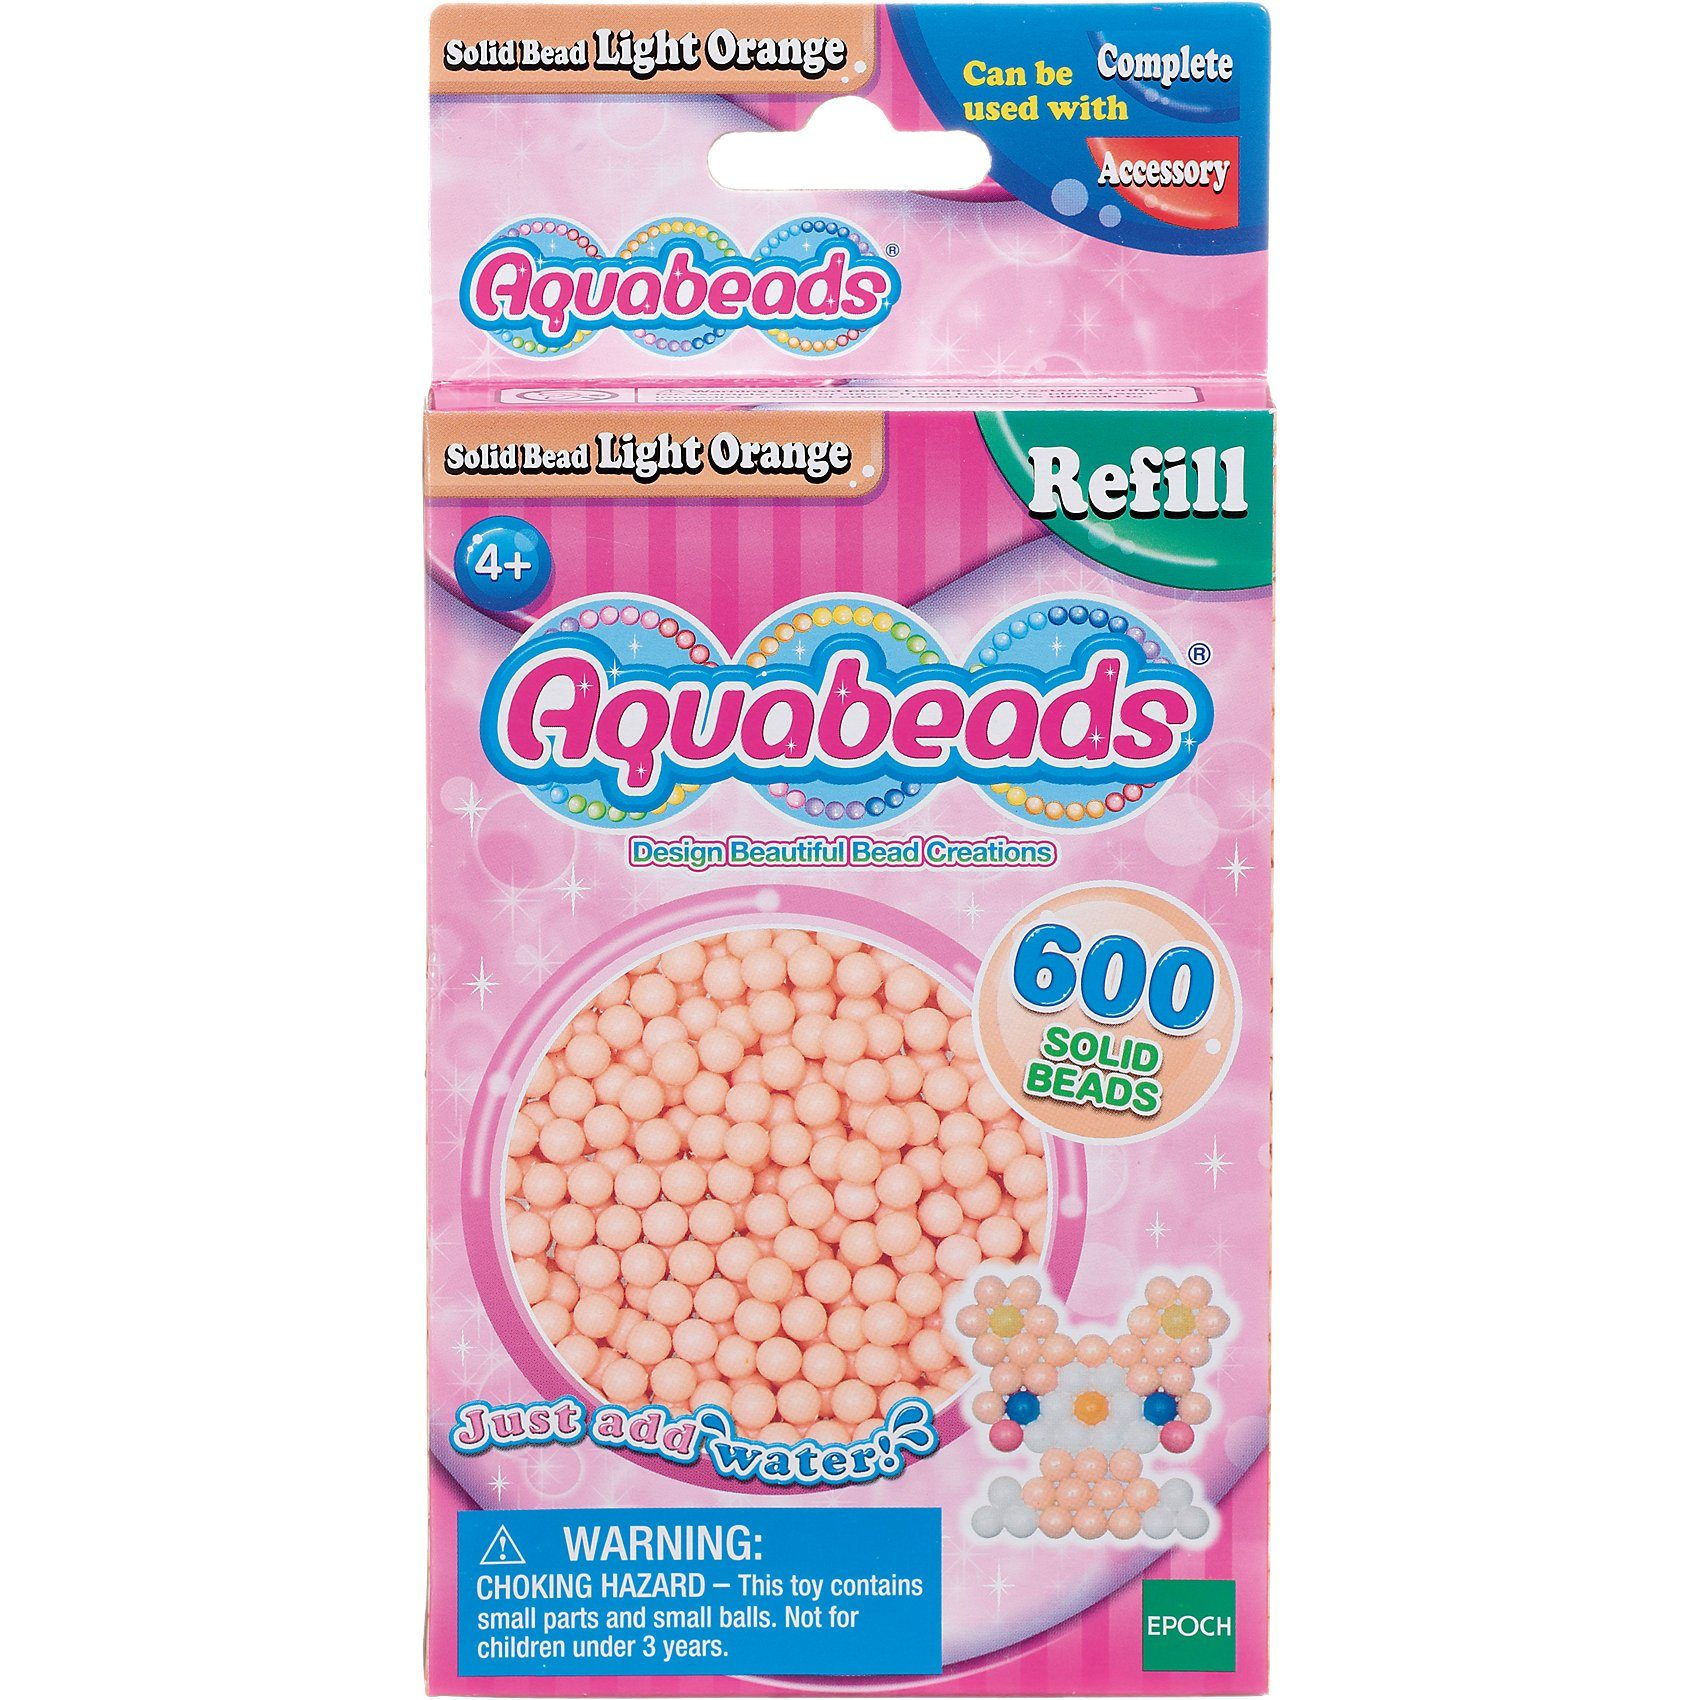 Epoch Traumwiesen Aquabeads Nachfüllpack Hell-Orange Perlen